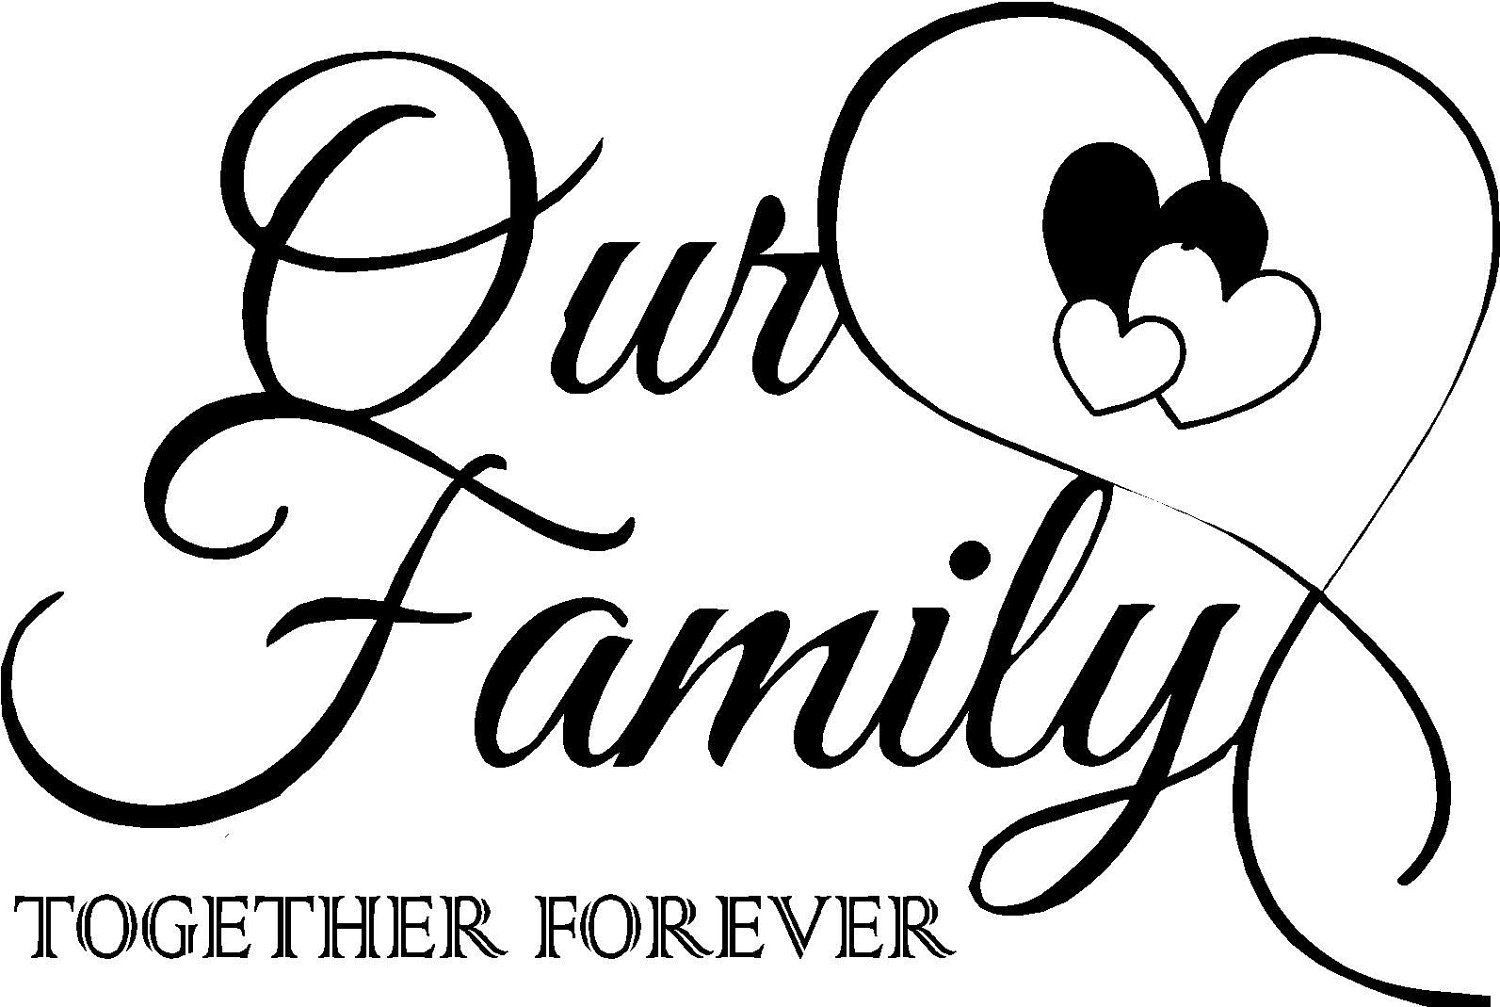 Quote-Our Family Together Forever With Hearts-special Buy